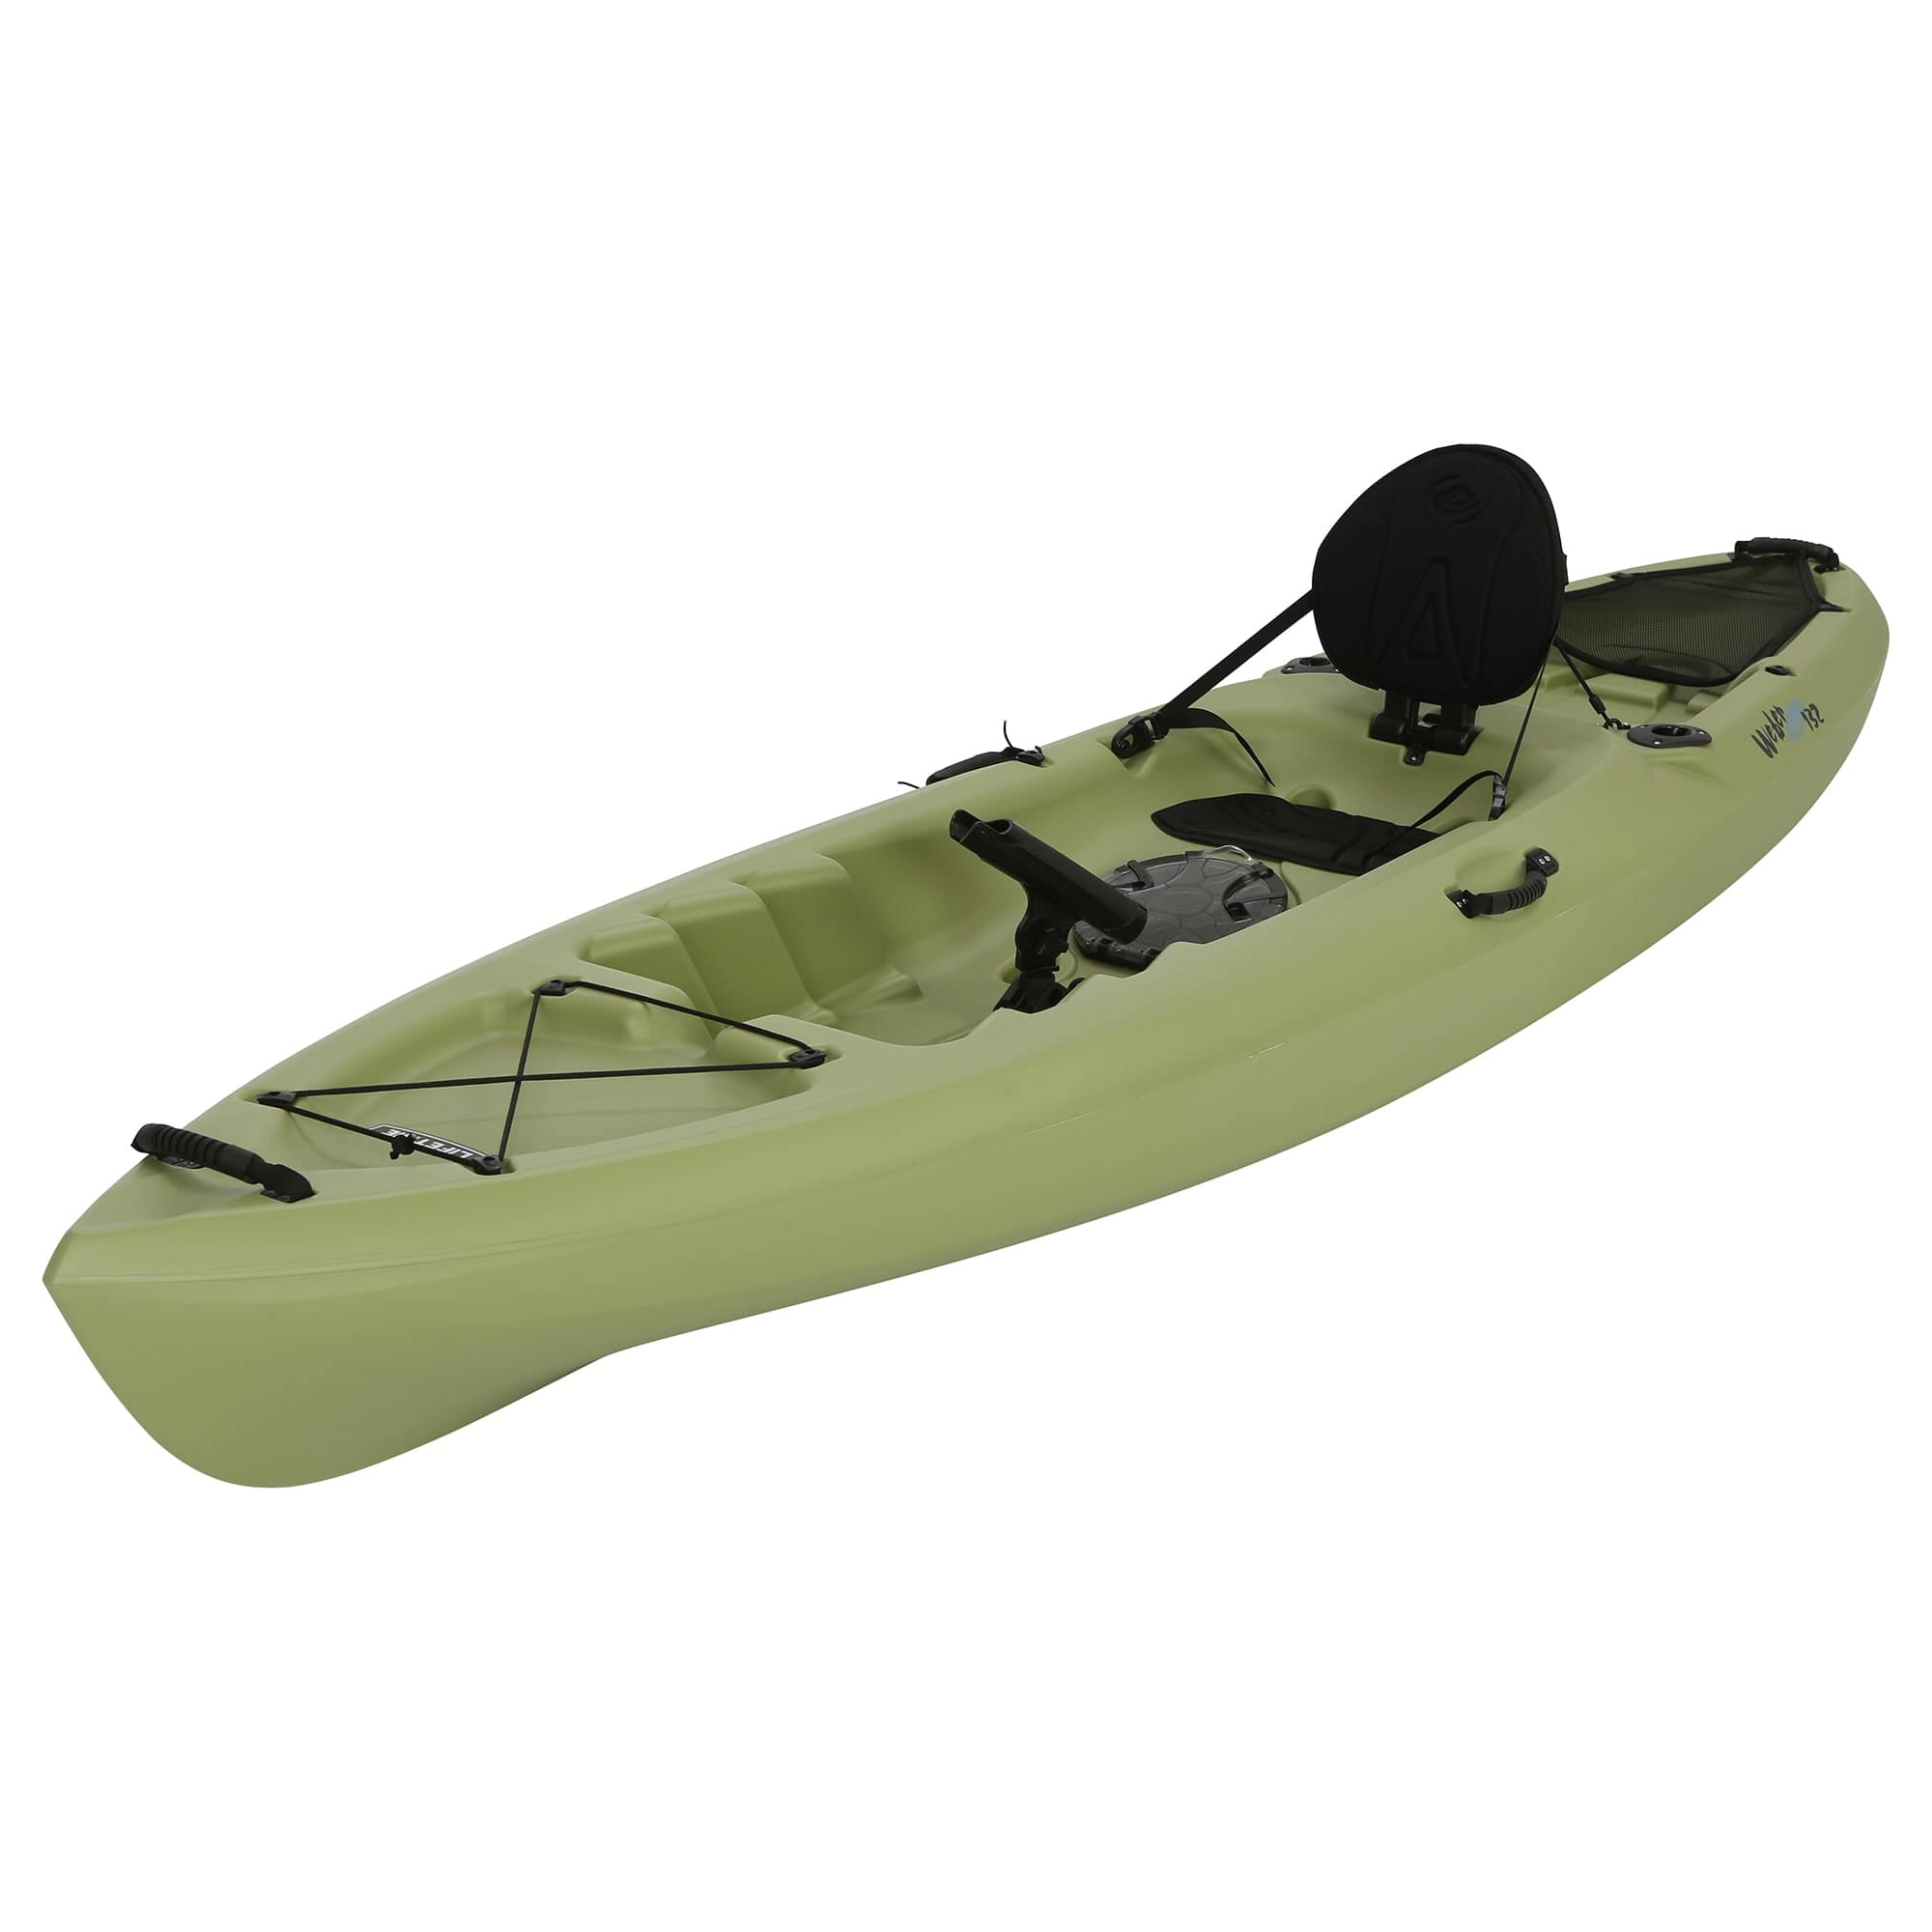 Fishing Kayak Weber 132, 11' , Model 90609 (Lifetime